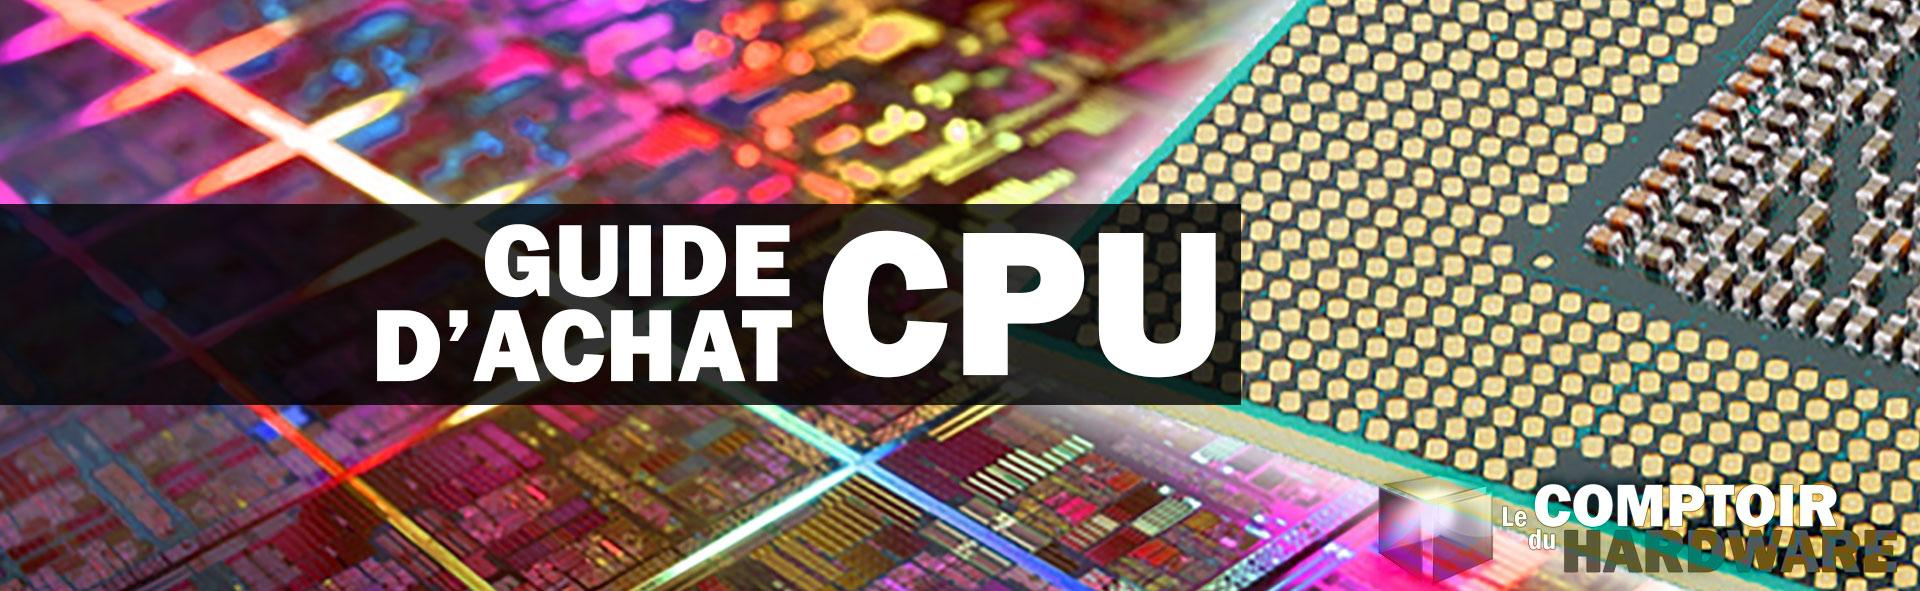 header guide cpu